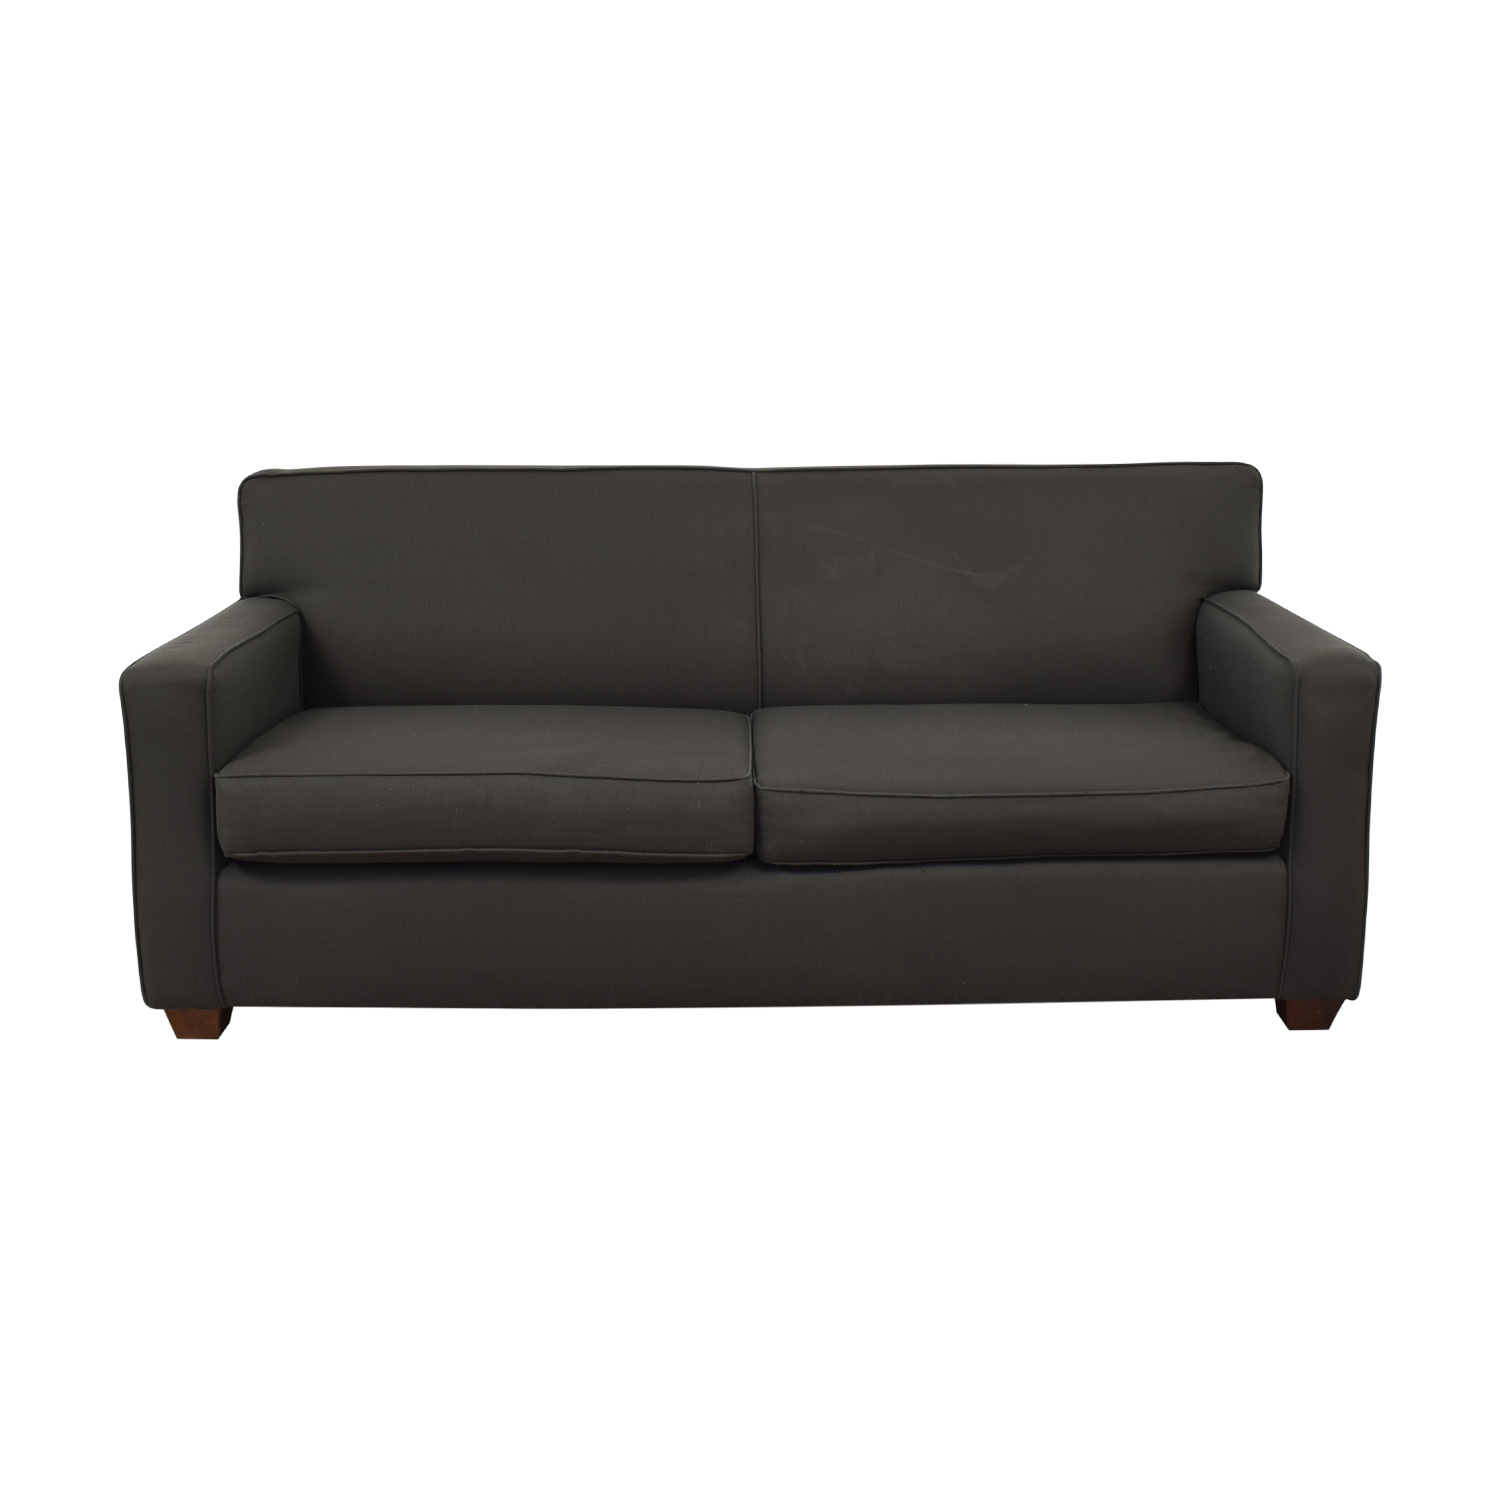 64 off alan white alan white brown couch sofas rh kaiyo com alan white sofa slipcovers alan white sofa slipcovers